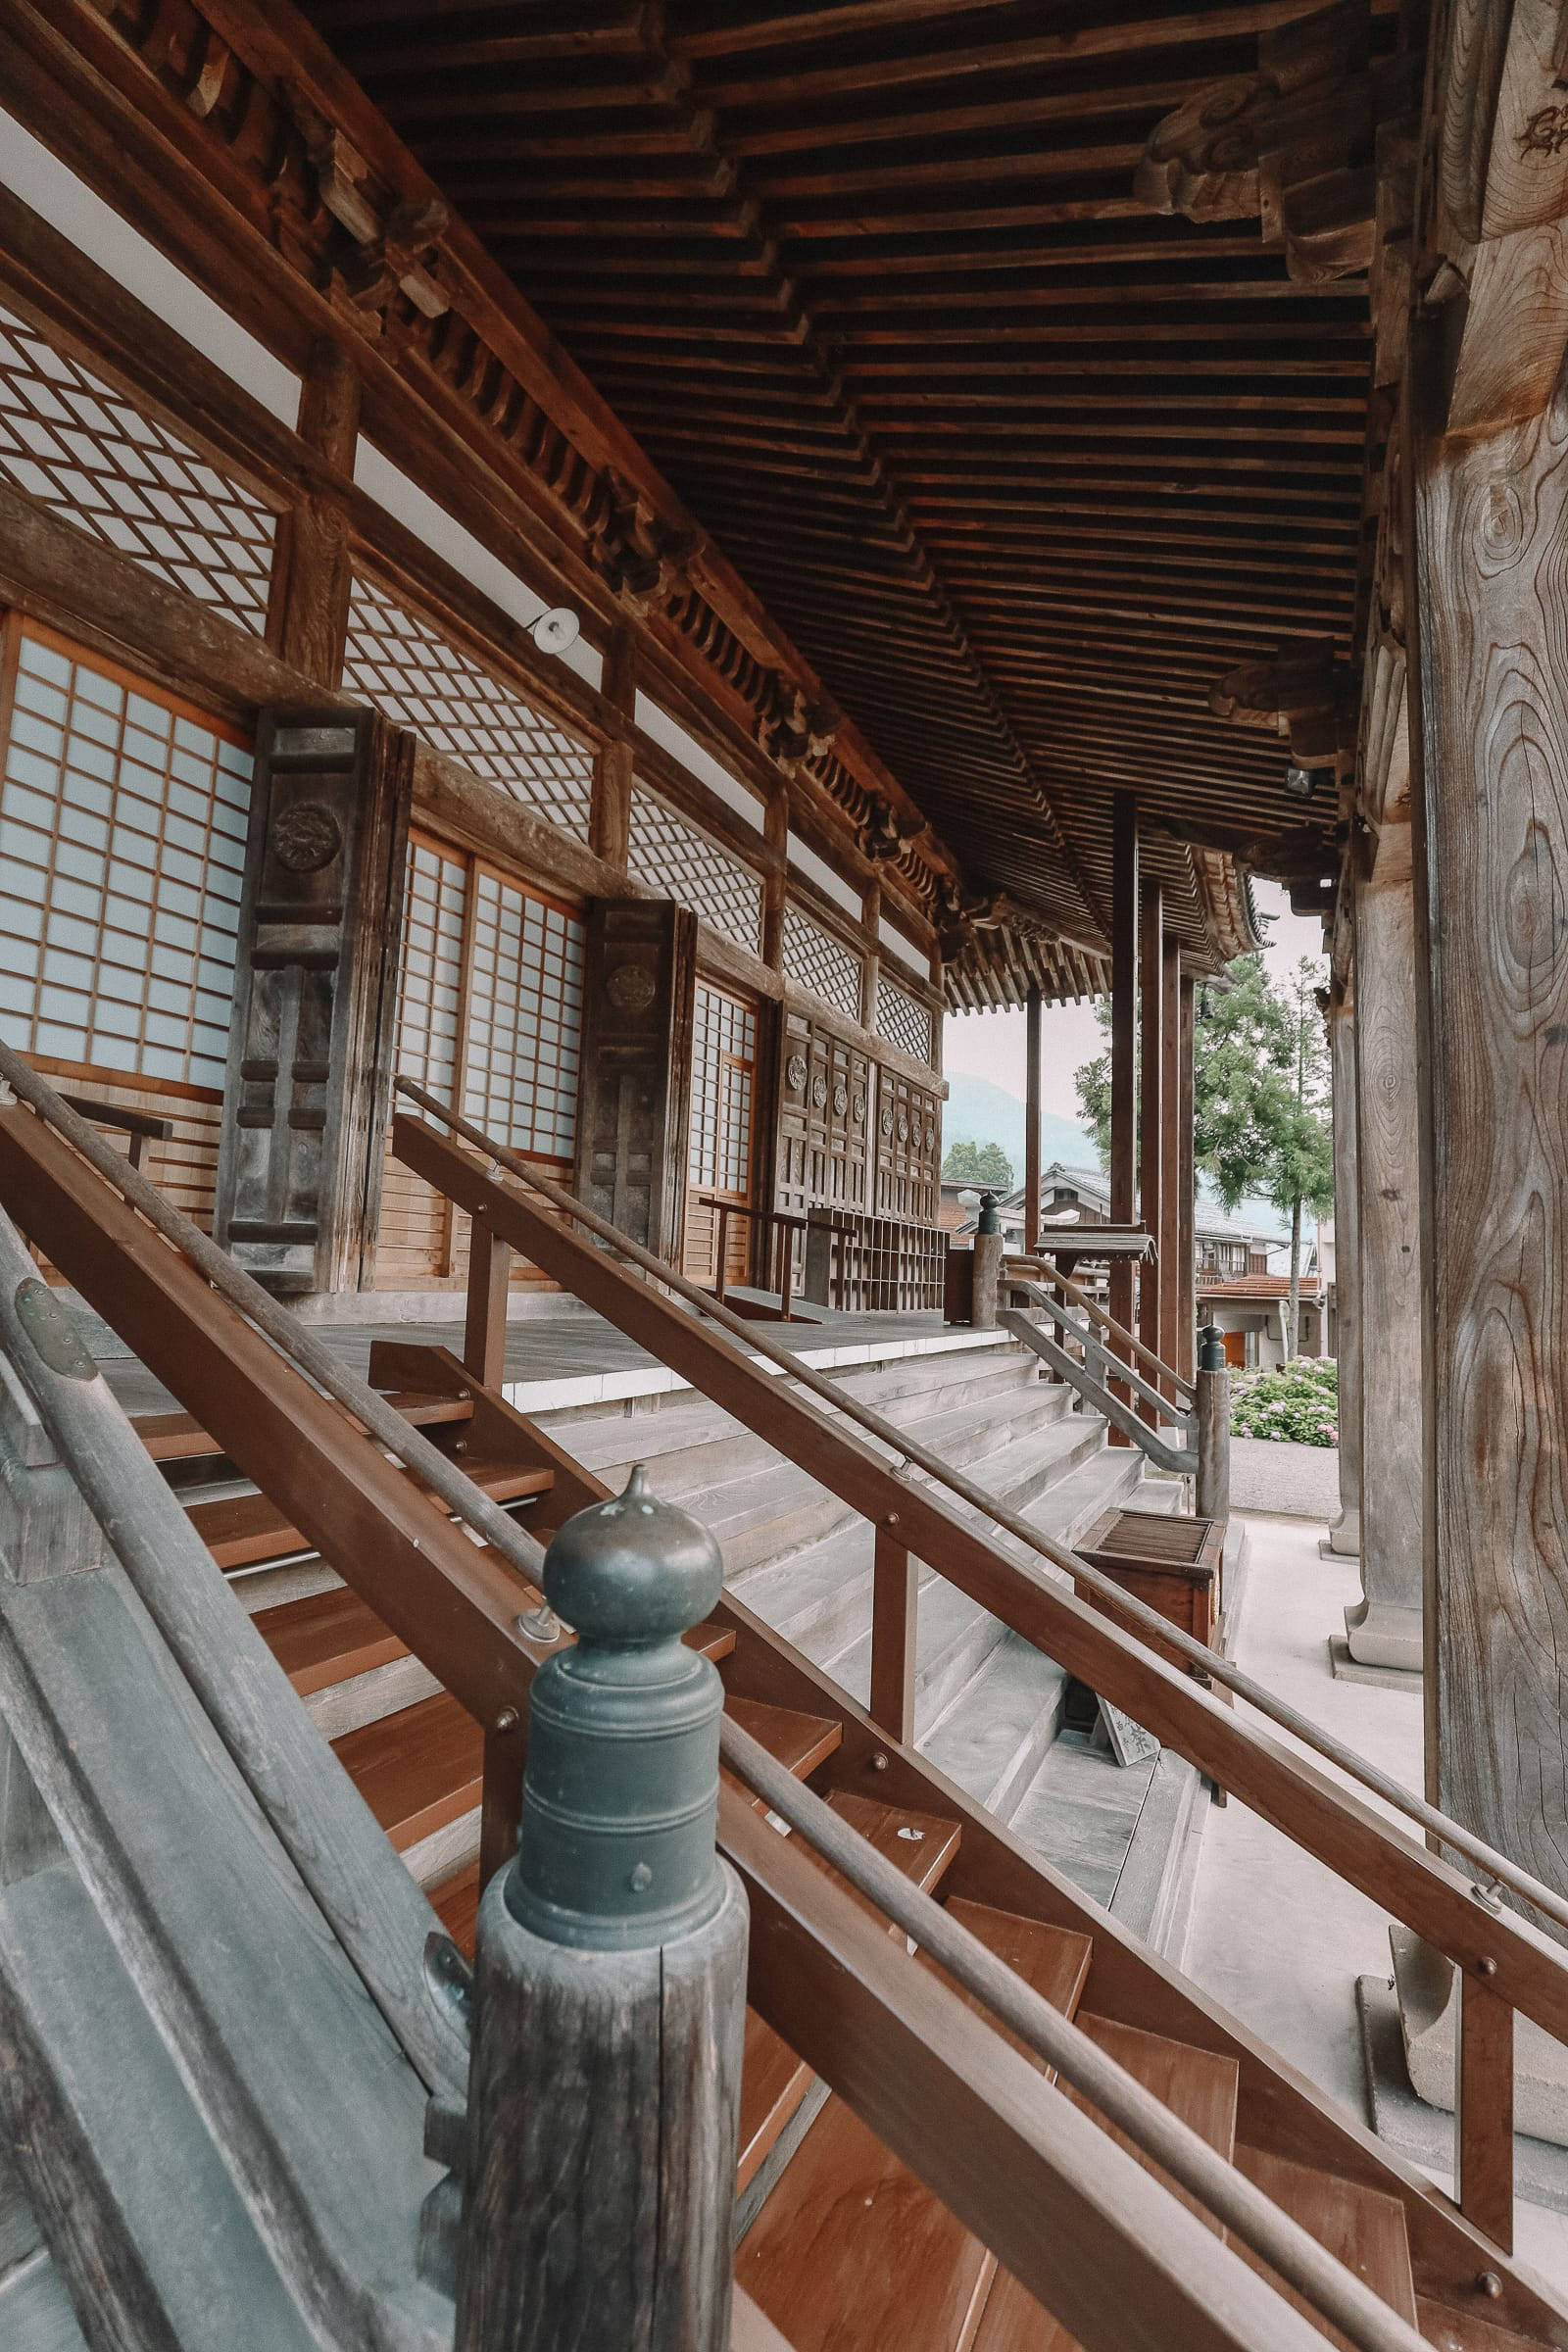 A Misogi Purification Ritual And Temples In Hakusan City - Japan (21)